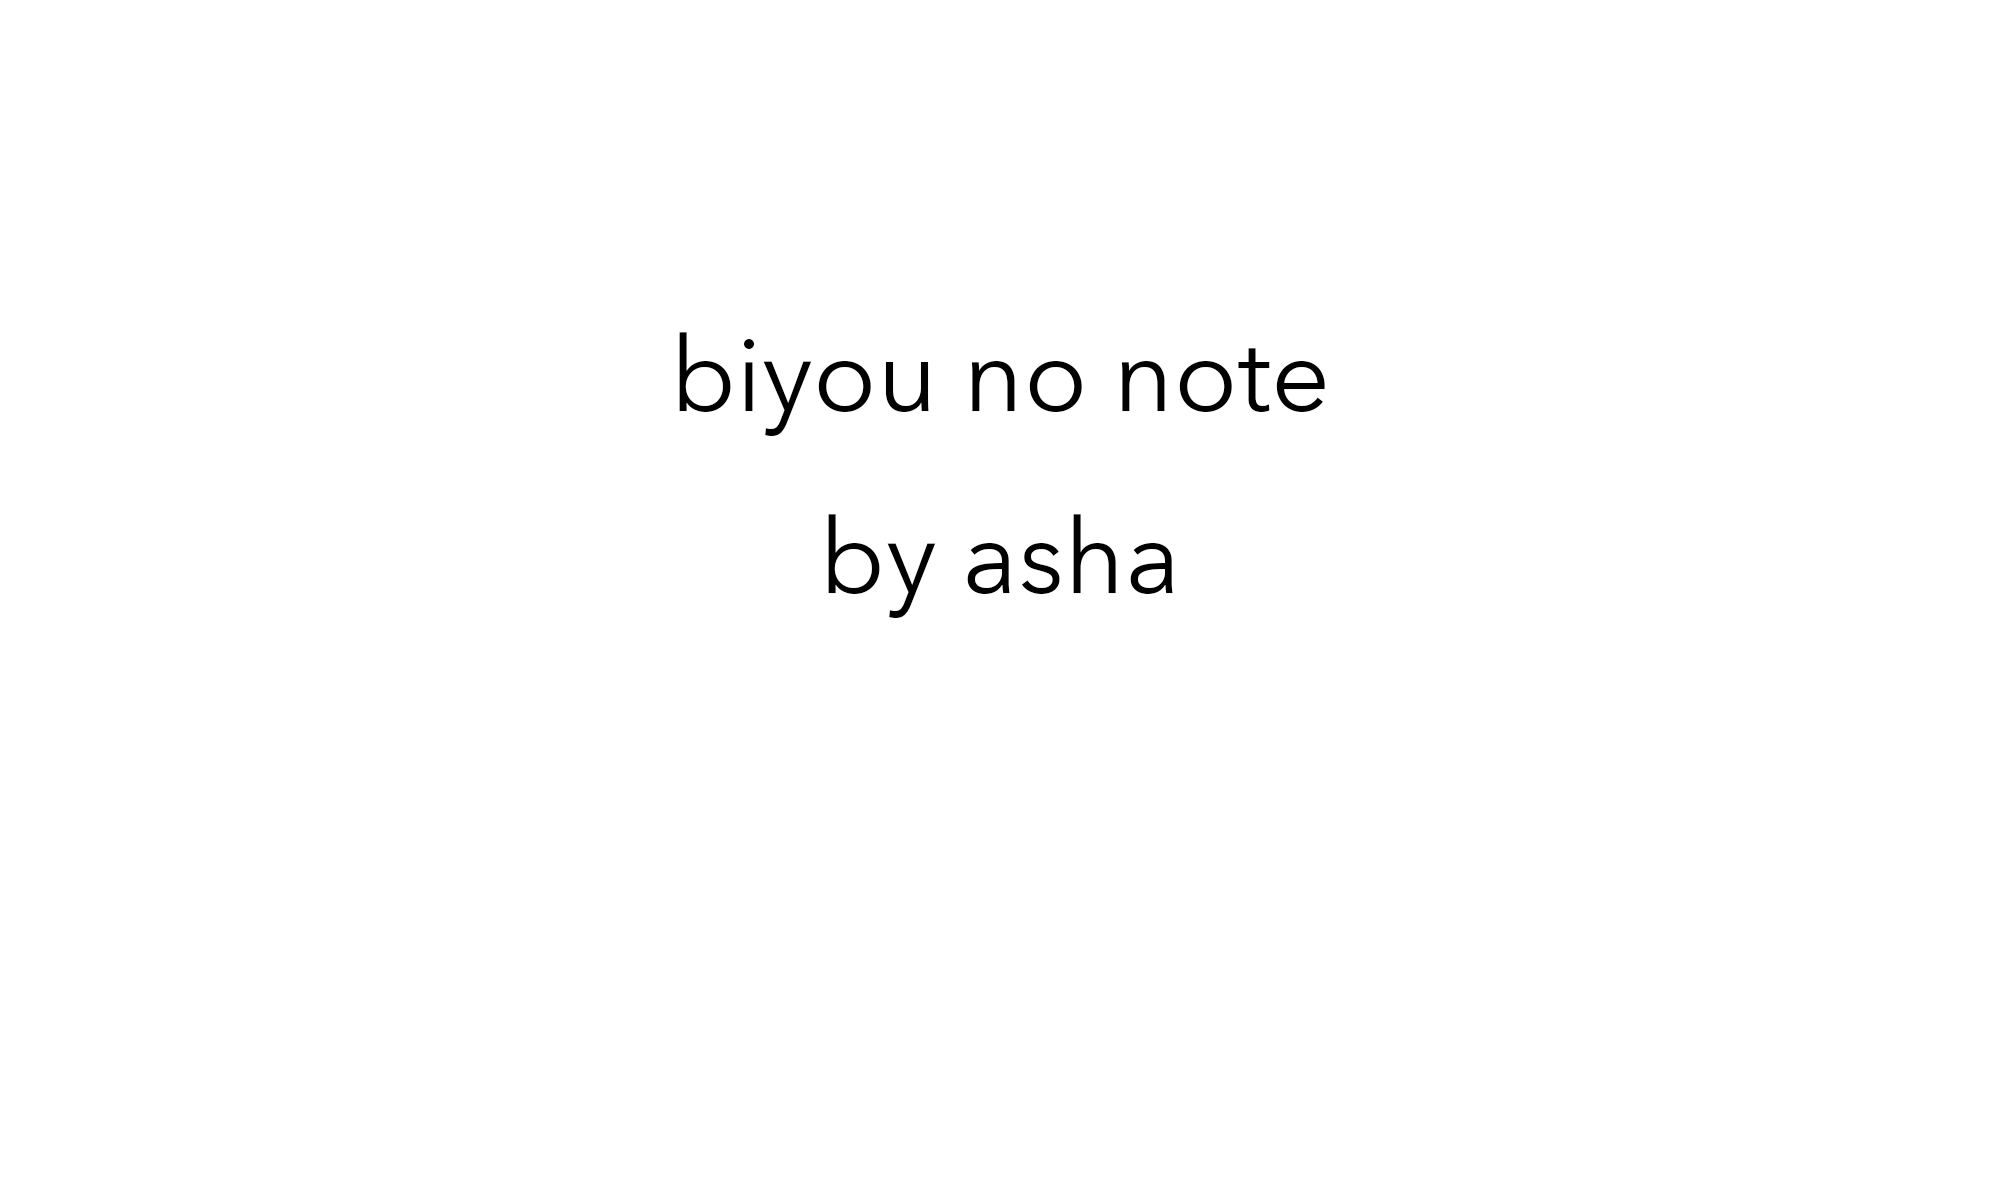 biyou no note